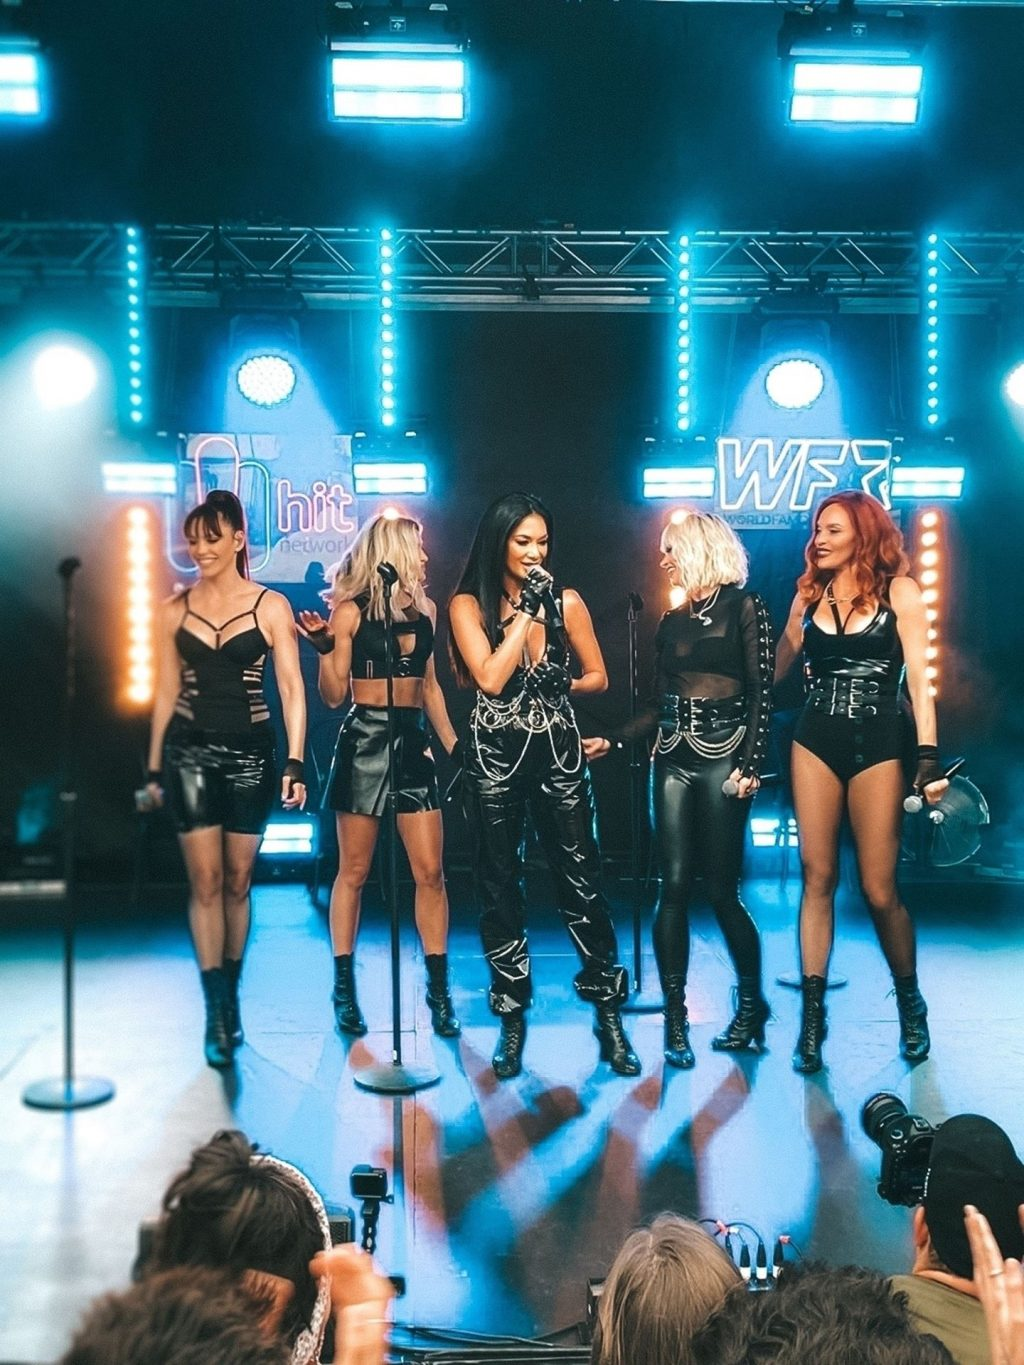 The Pussycat Dolls Perform Live at the Rooftop in Melbourne (23 Photos)